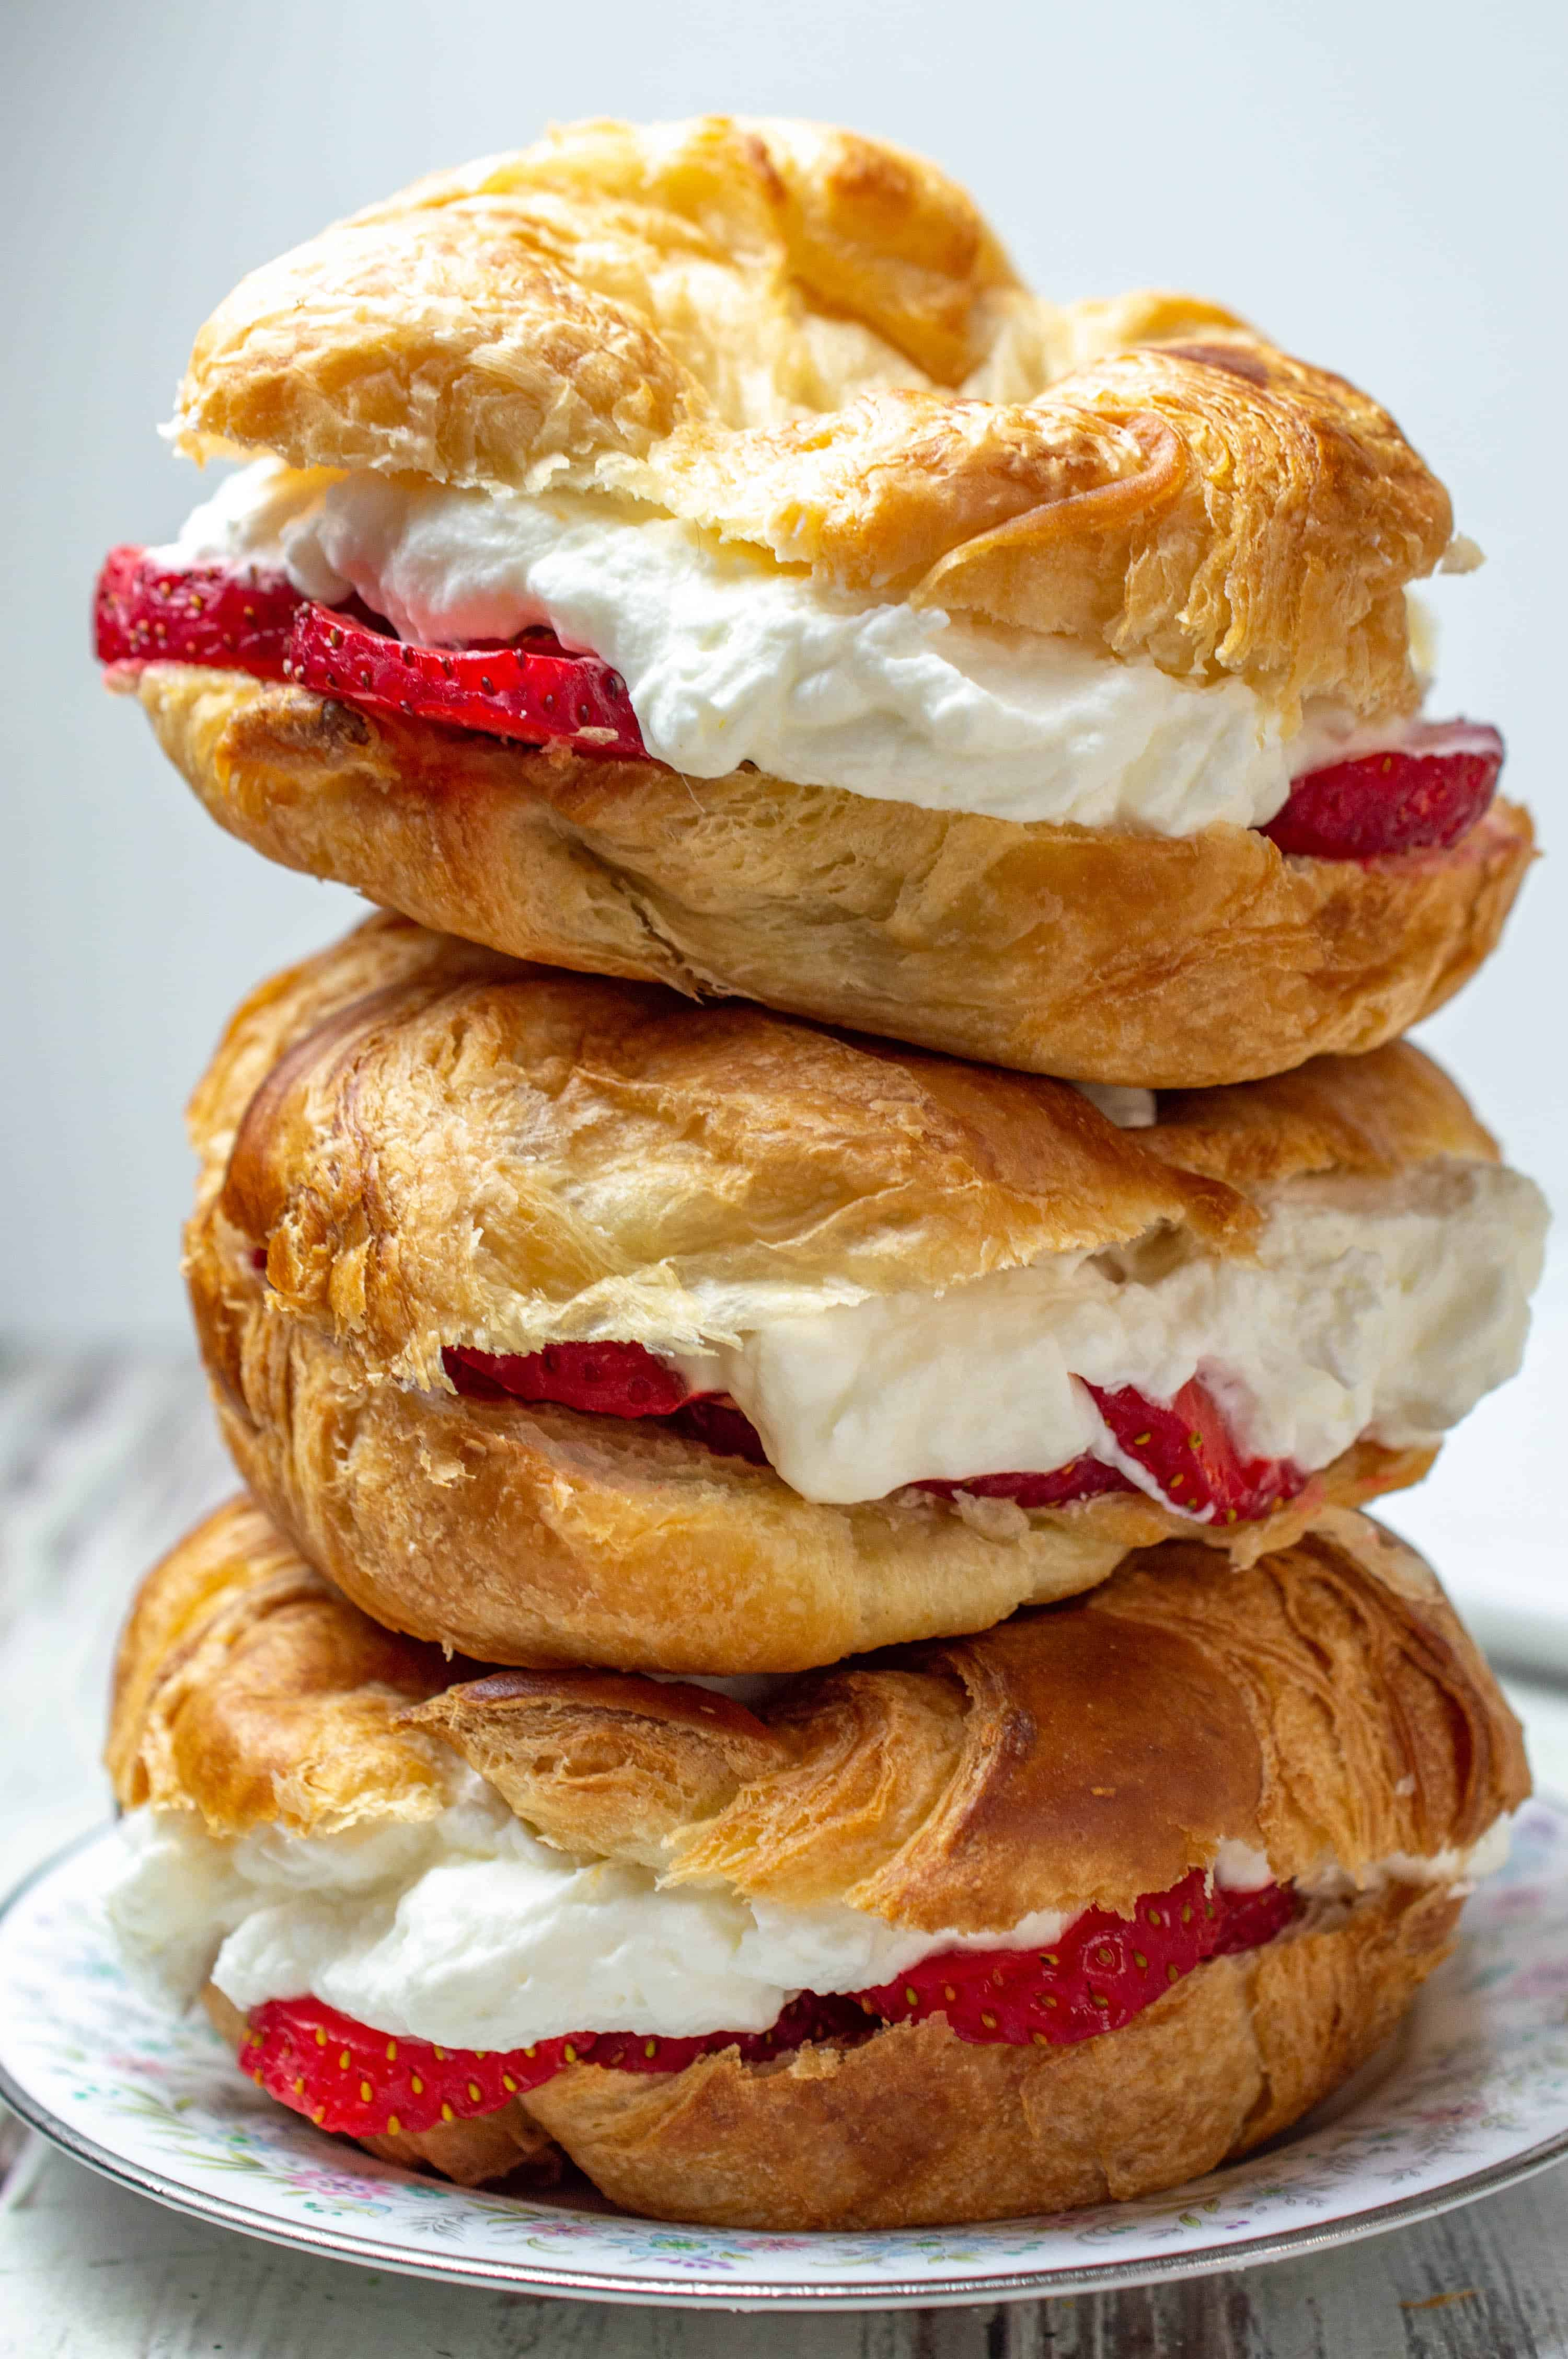 Strawberry and Almond Flavored Whipped Cream Filled Croissants